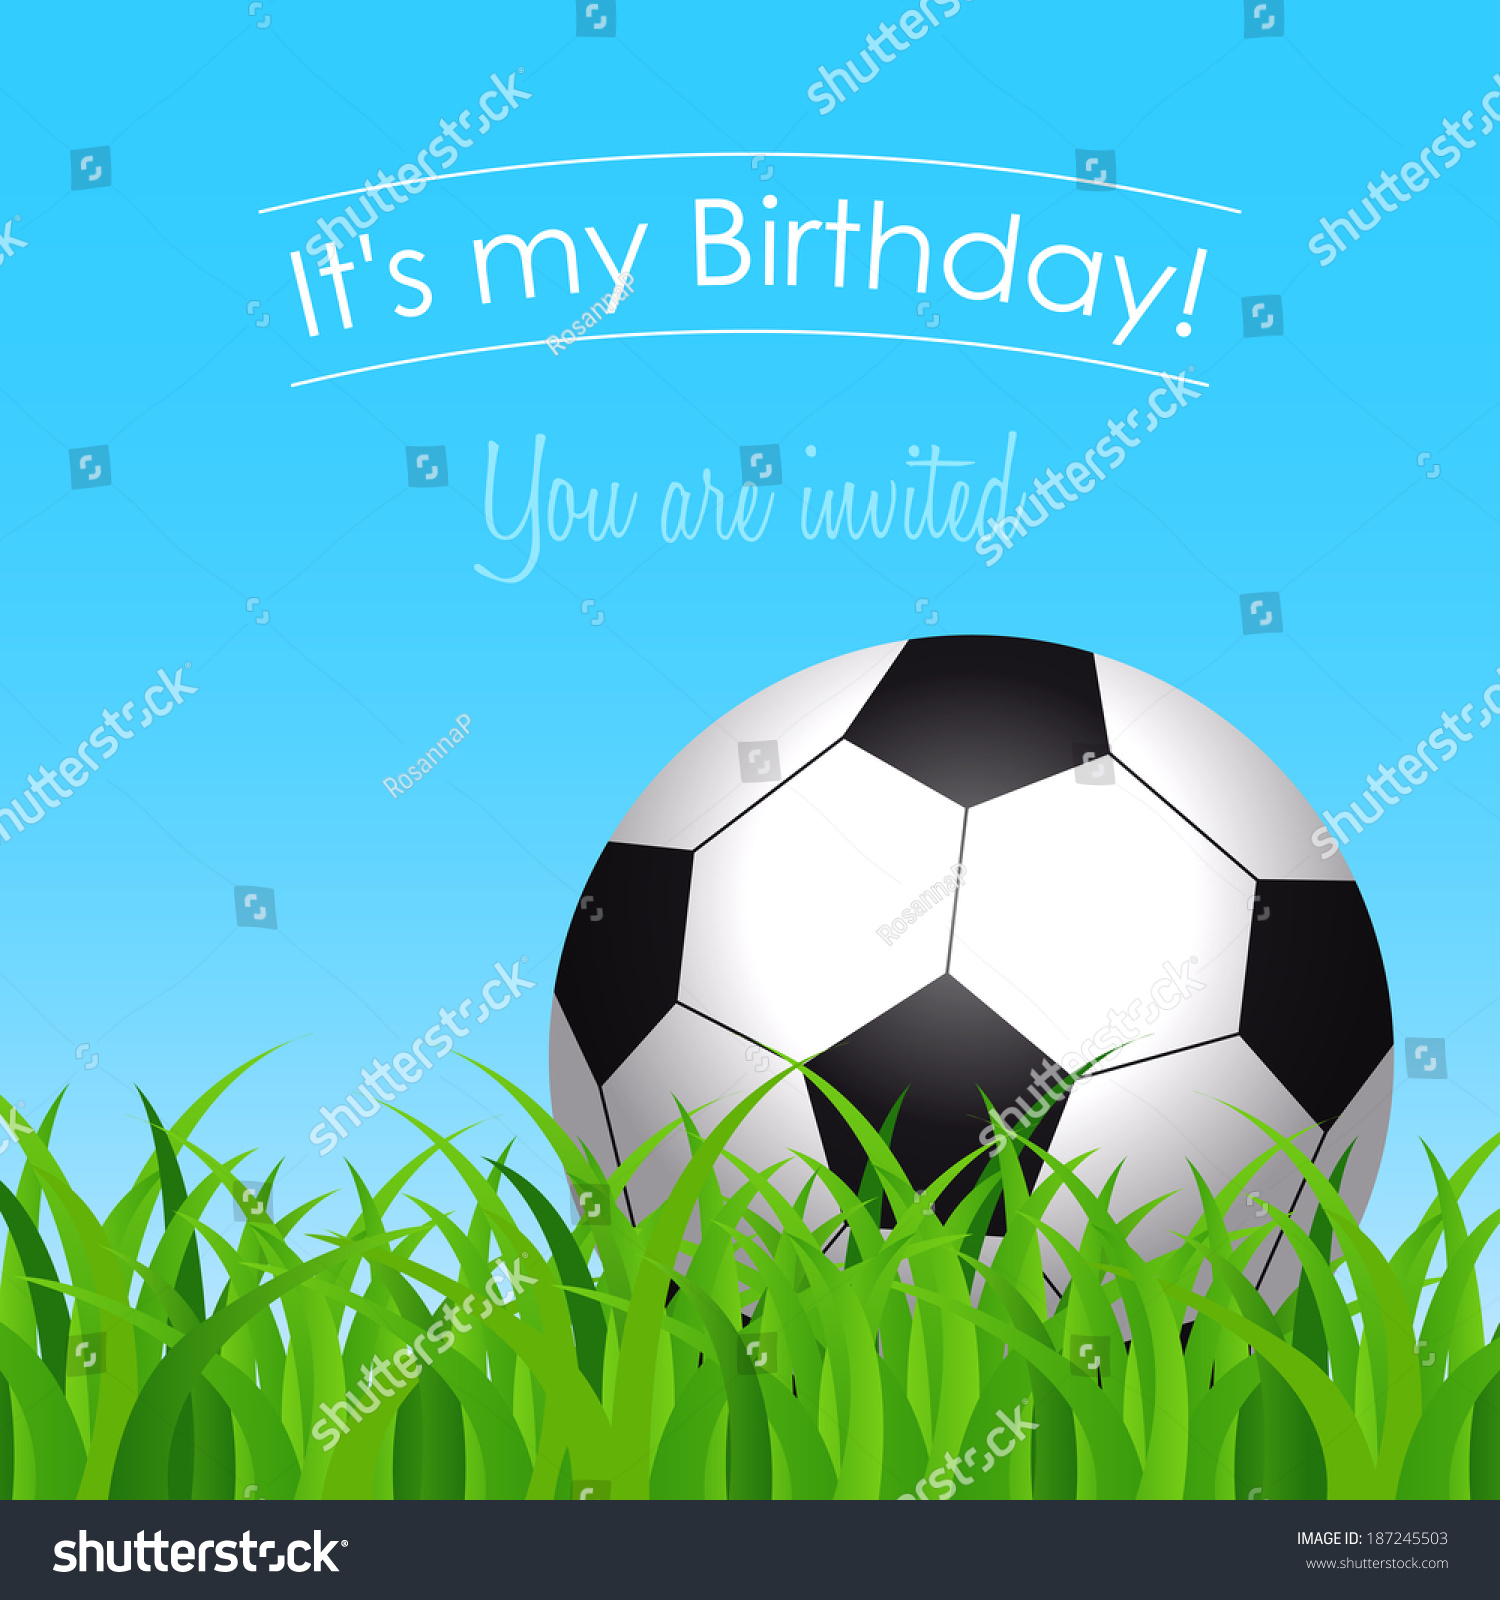 birthday card invitation birthday party soccer stock vector, Birthday card